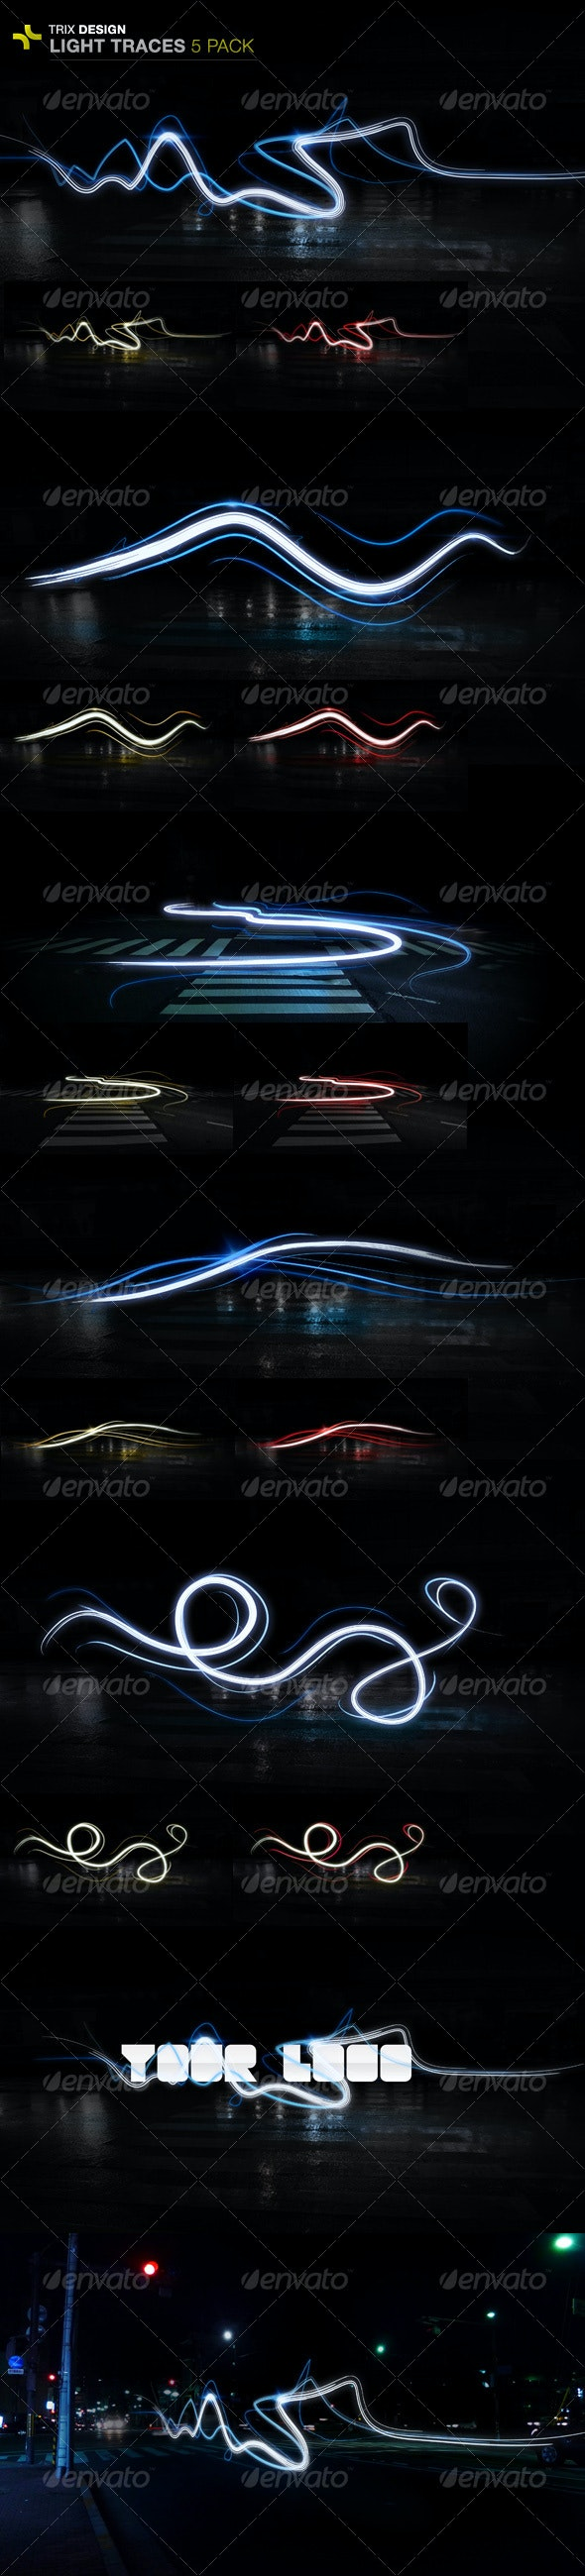 Light Trails - 5 Pack - Backgrounds Graphics